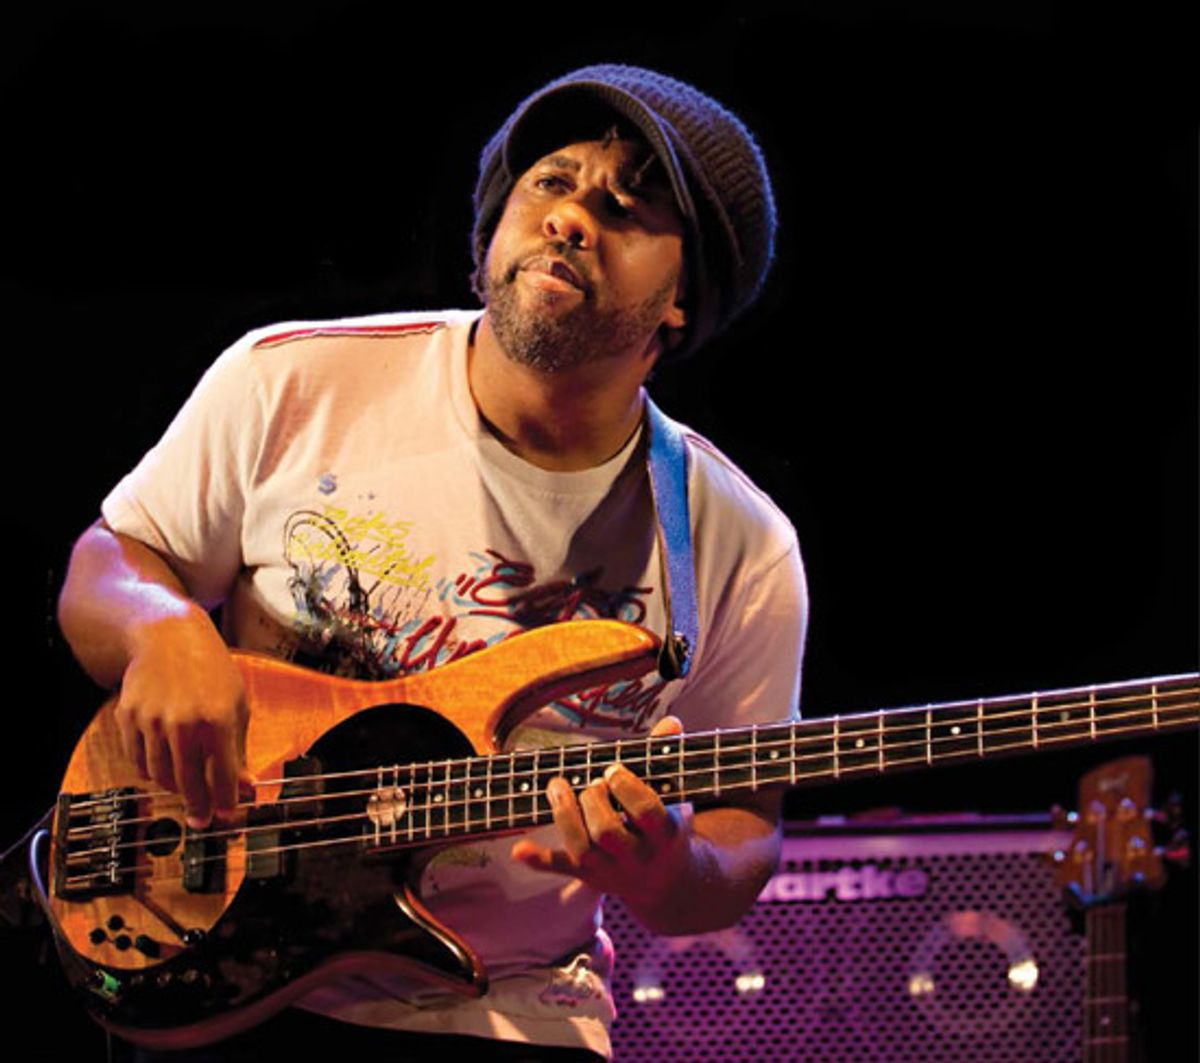 Interview: Victor Wooten - Zen and the Art of Playing to Infinity